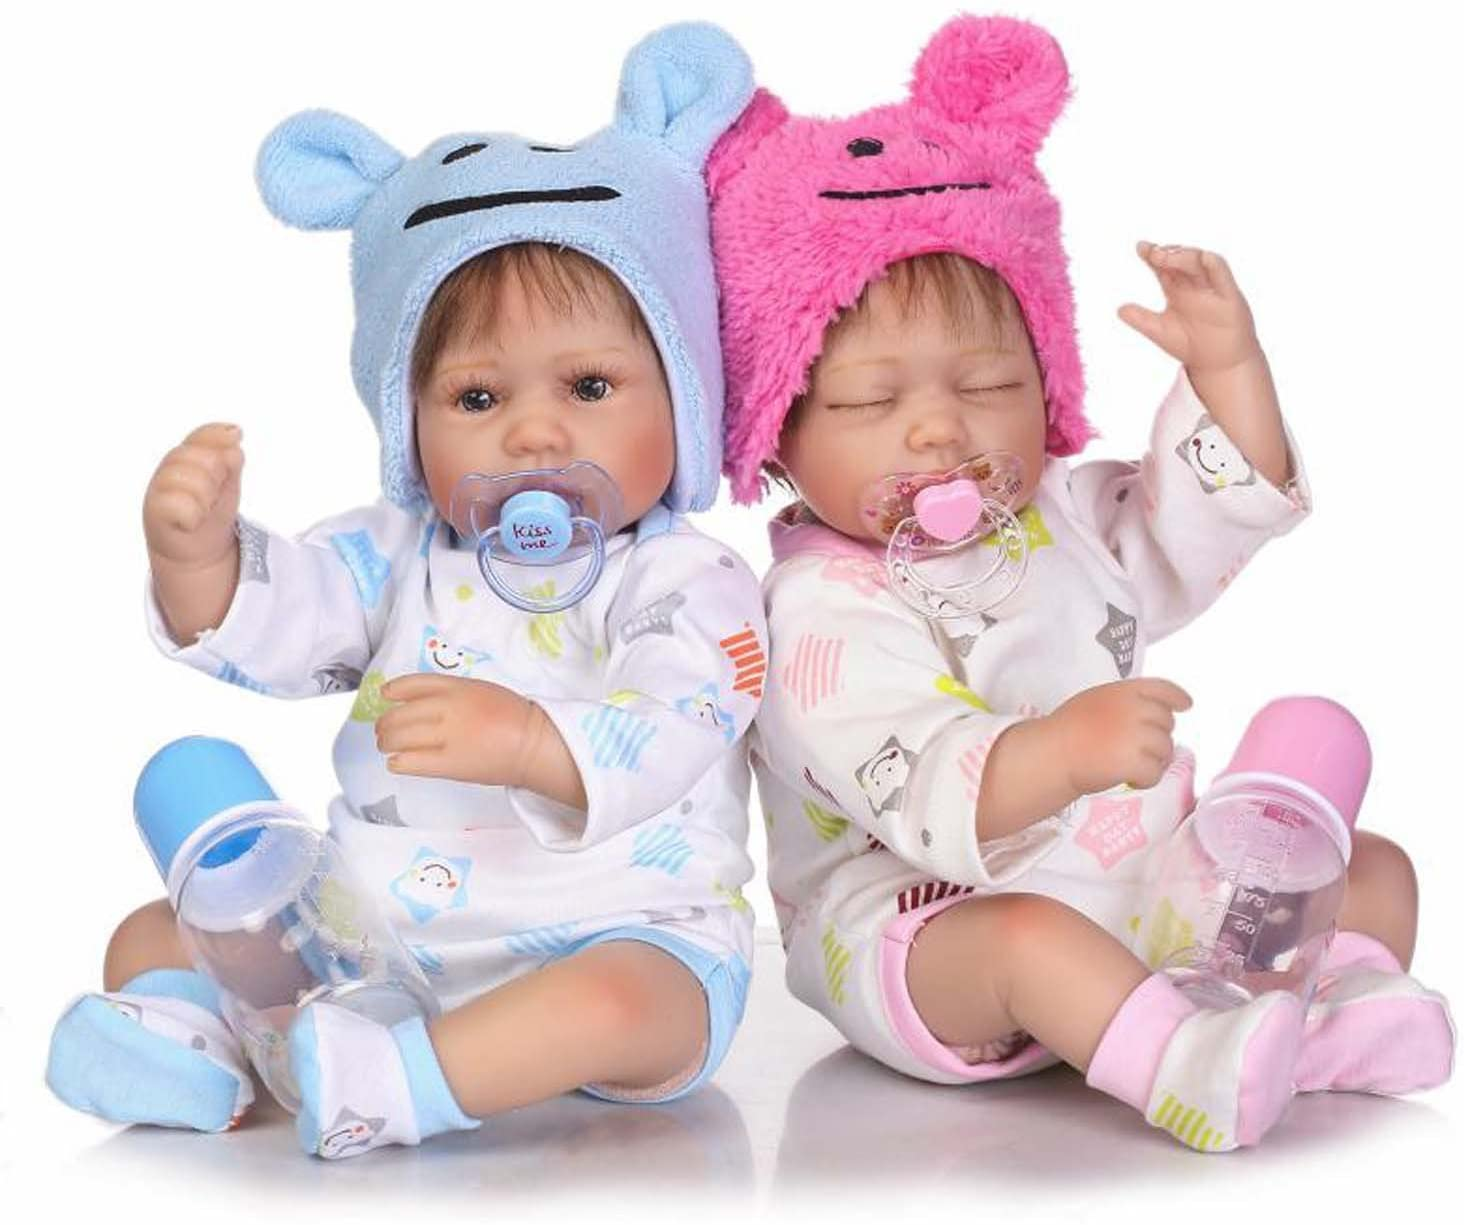 16 Cheap Adorable Reborn Doll Twins You Can Buy